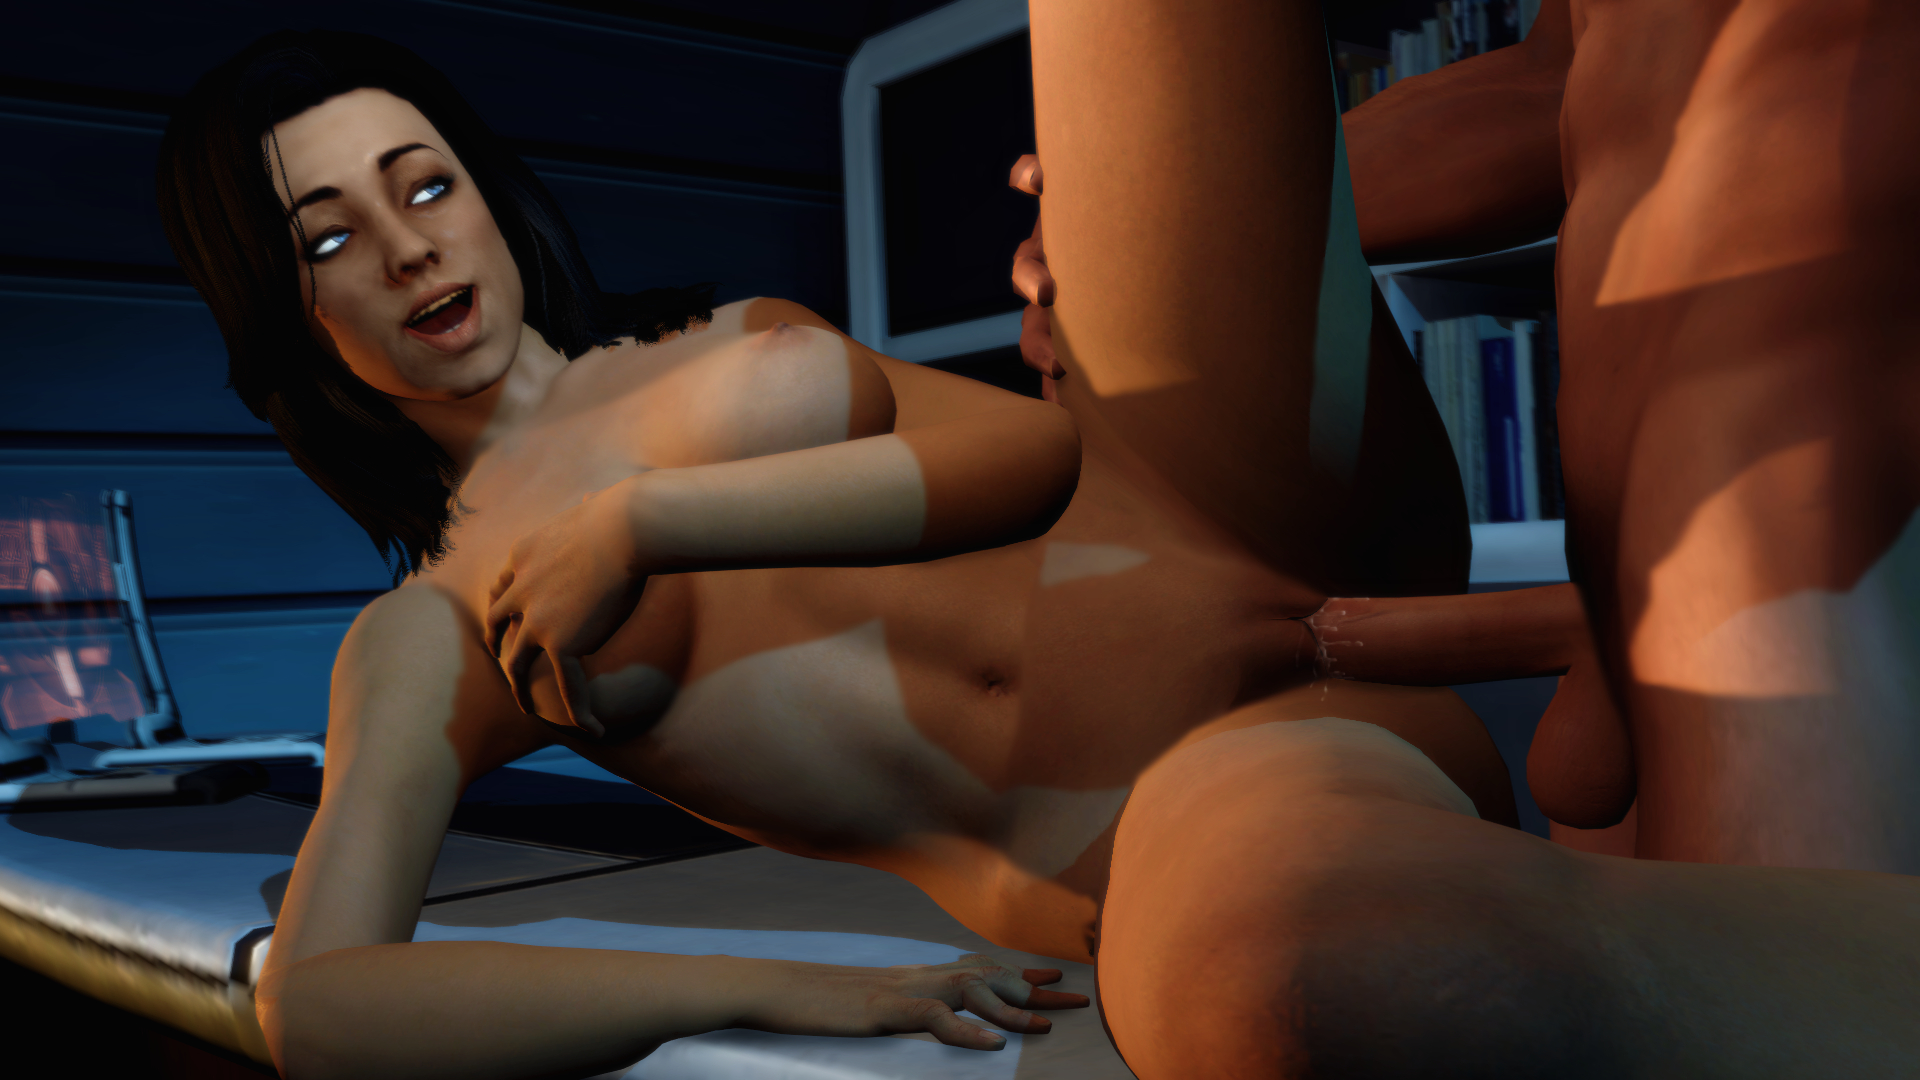 Hot mass effect porn pics porno video